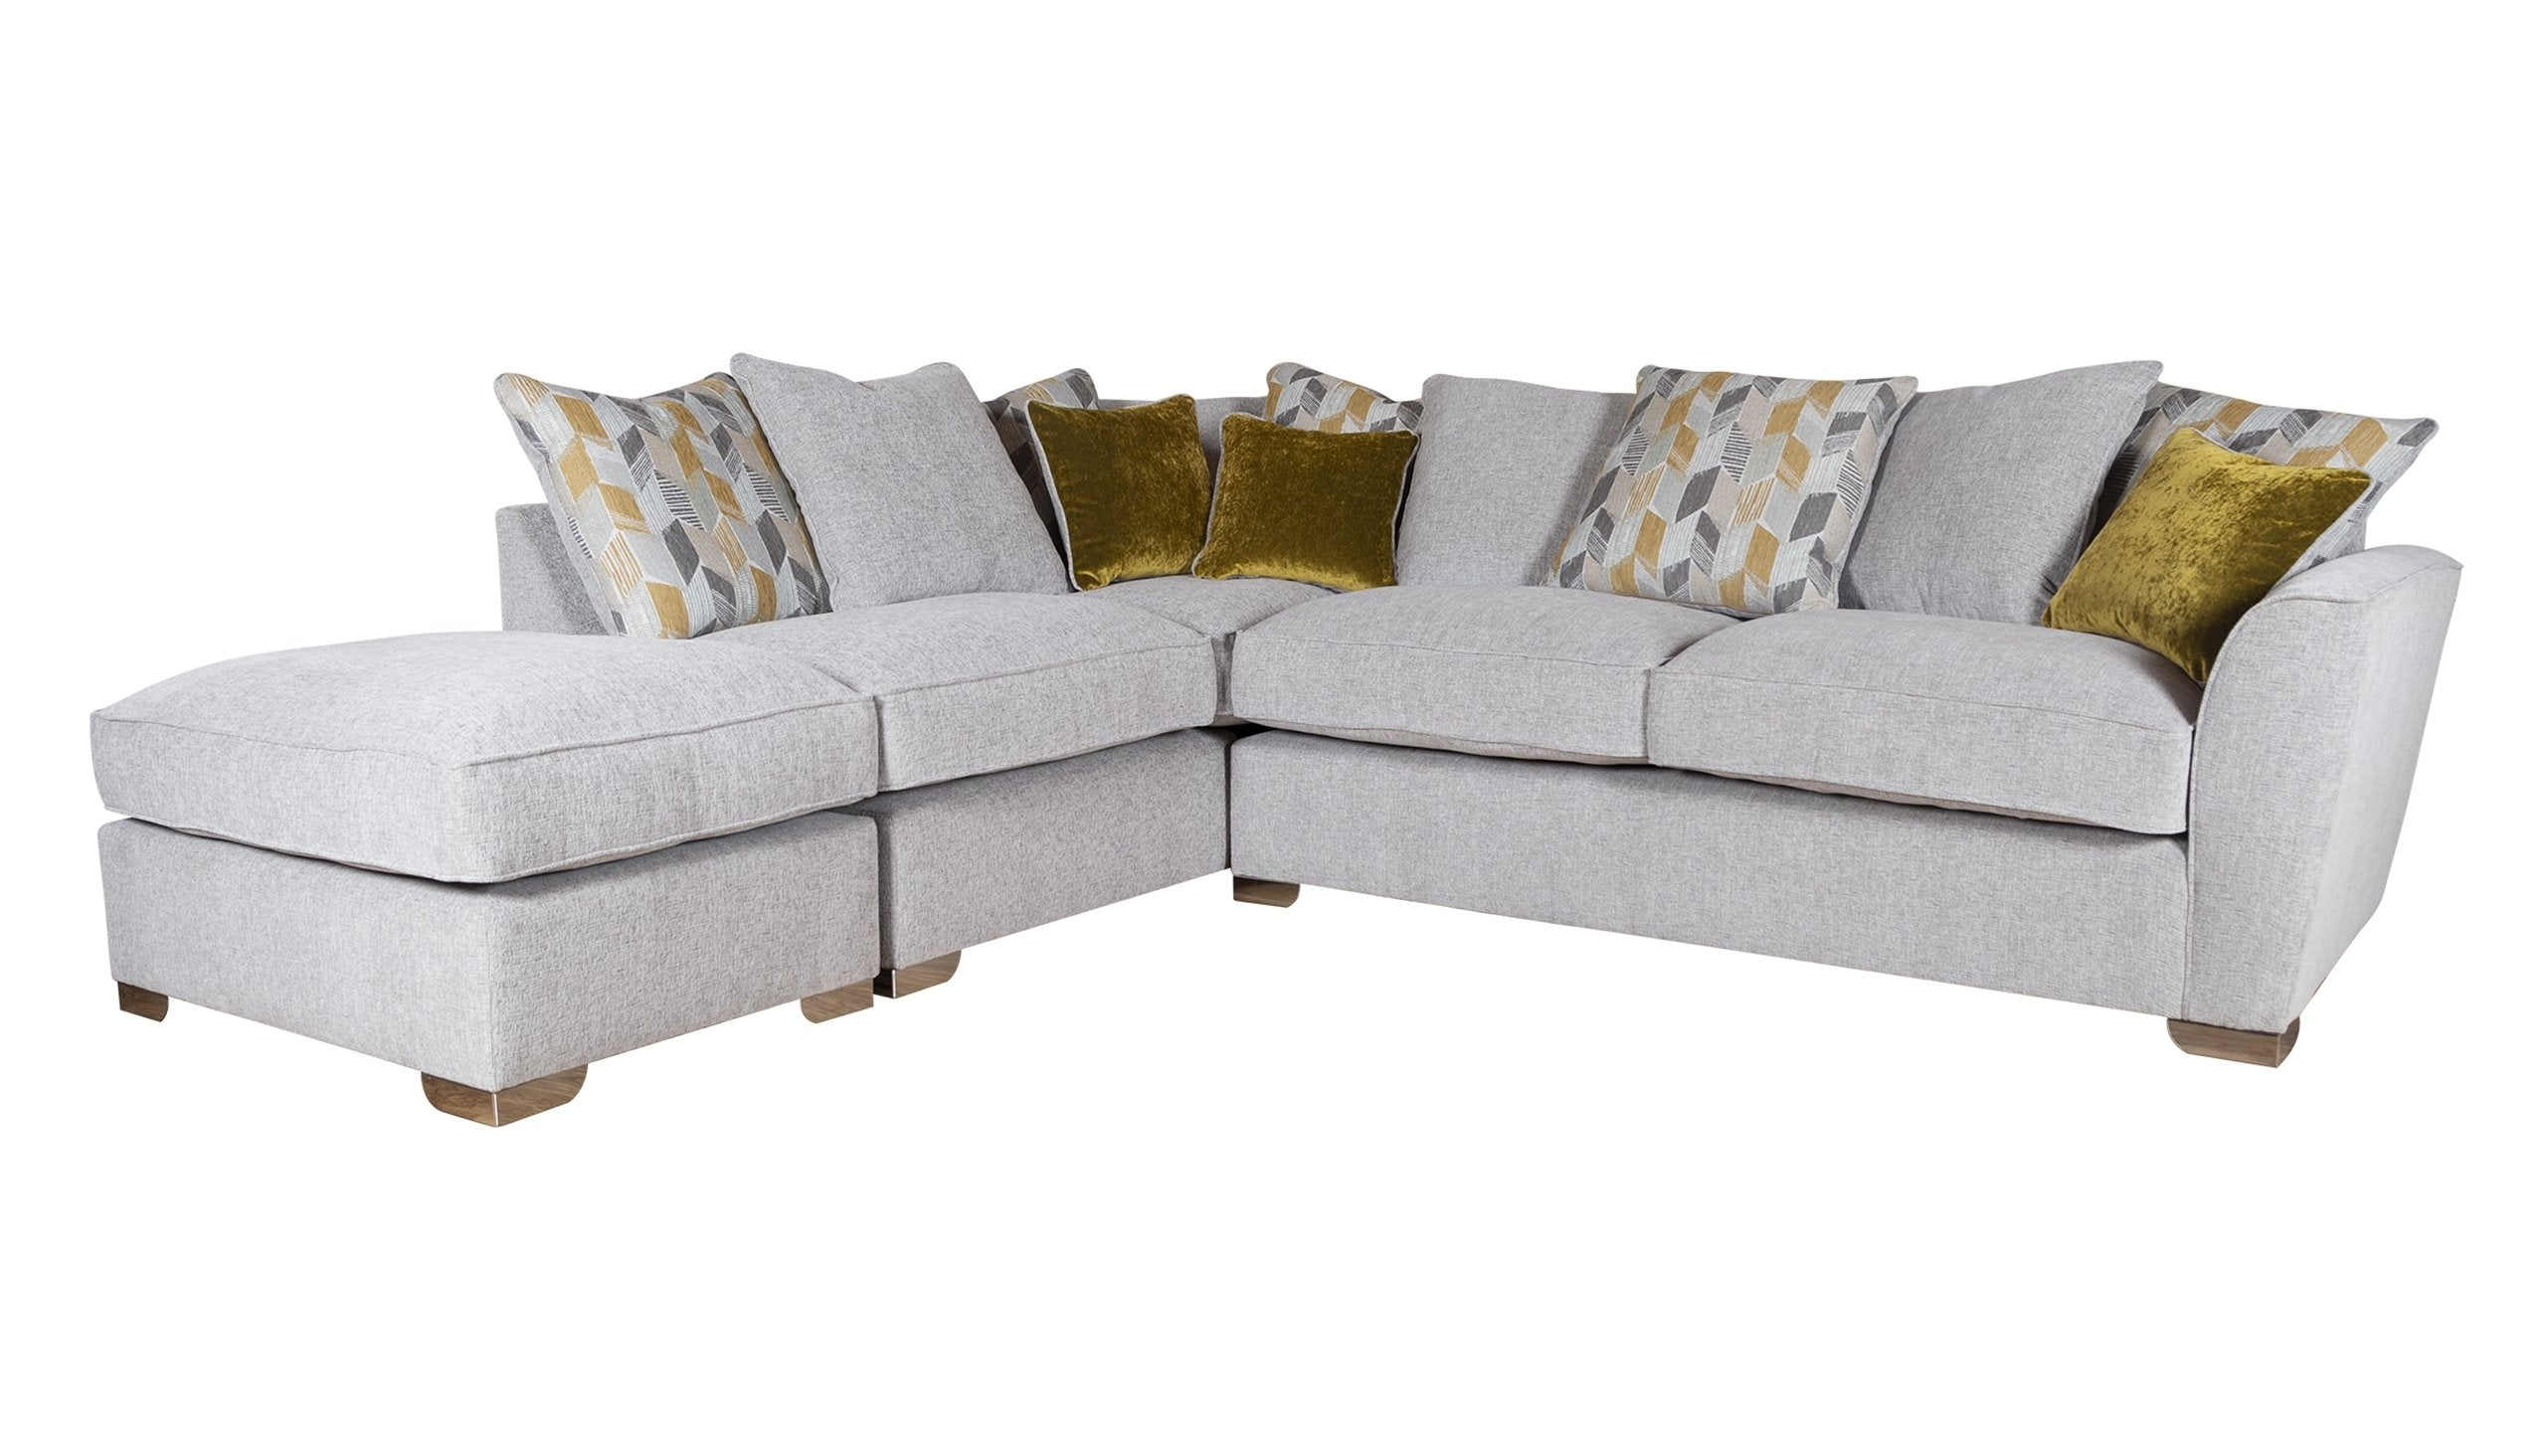 Hepburn Scatter Back RHF Corner Sofa with Stool - AHF Furniture & Carpets